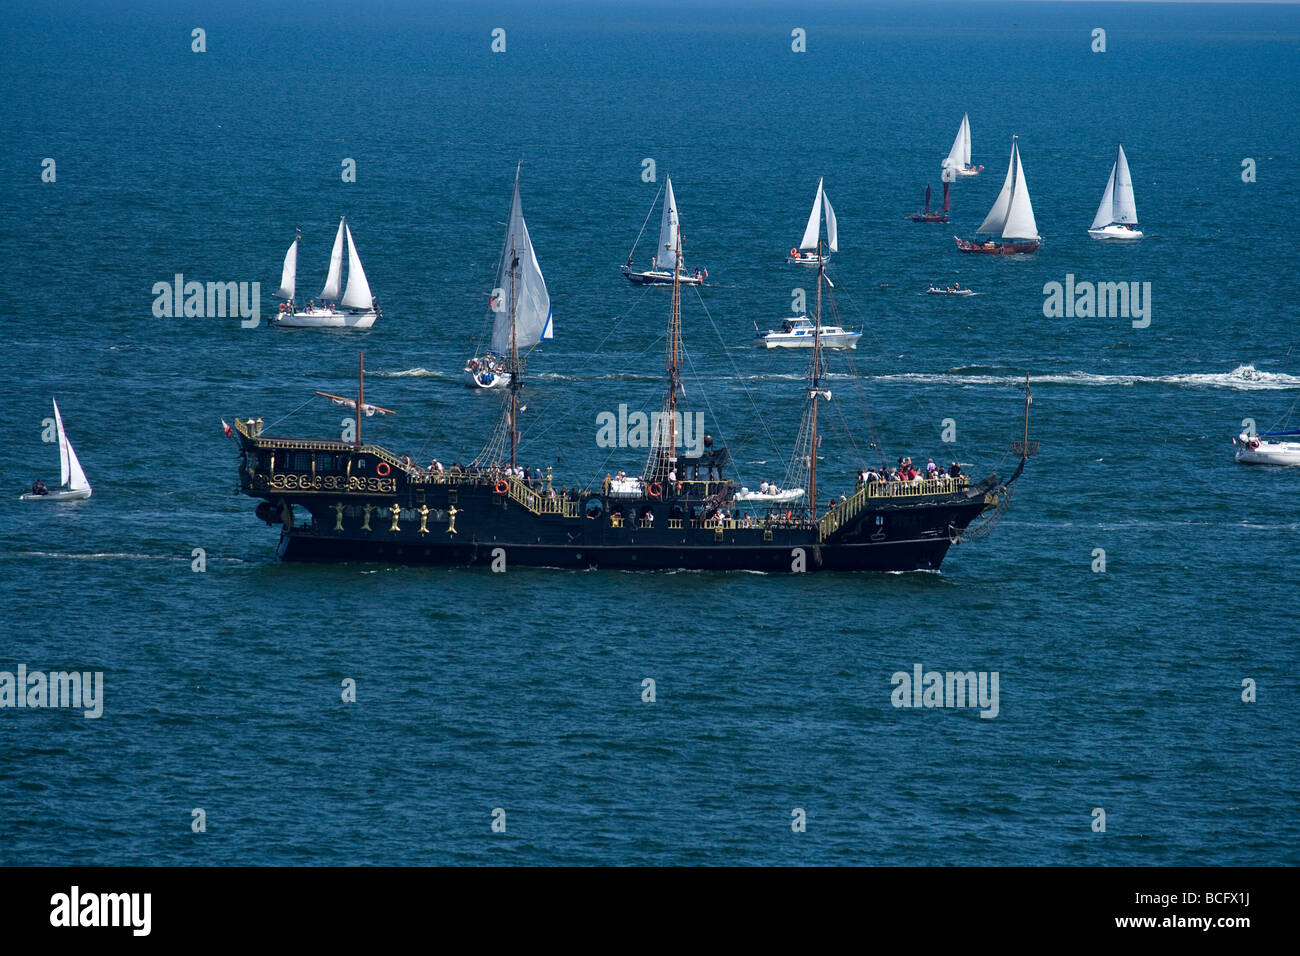 Photograph from the beginning of Tall Ships Races 2009 in Gdynia, Poland. - Stock Image